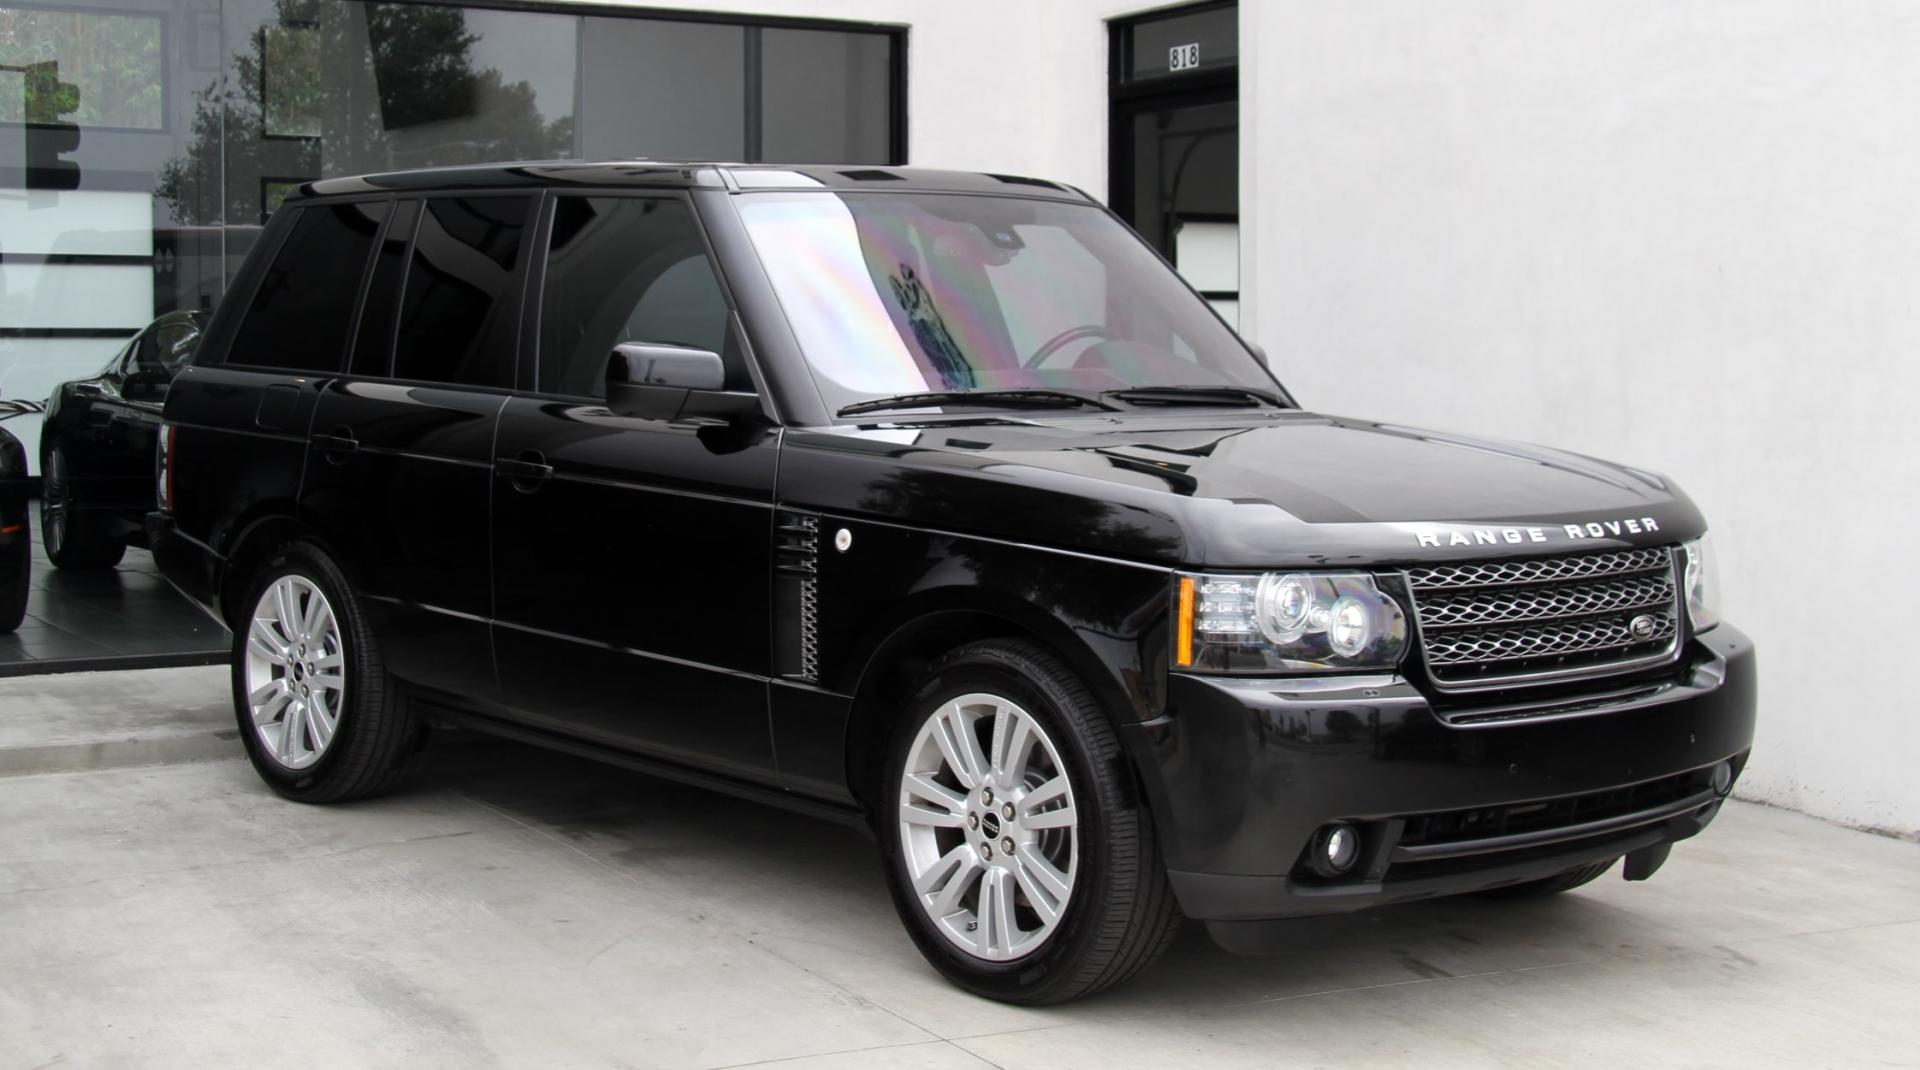 Used Range Rover For Sale Near Me >> 2012 Land Rover Range Rover HSE ** Luxury Package ** Stock # 5978 for sale near Redondo Beach ...